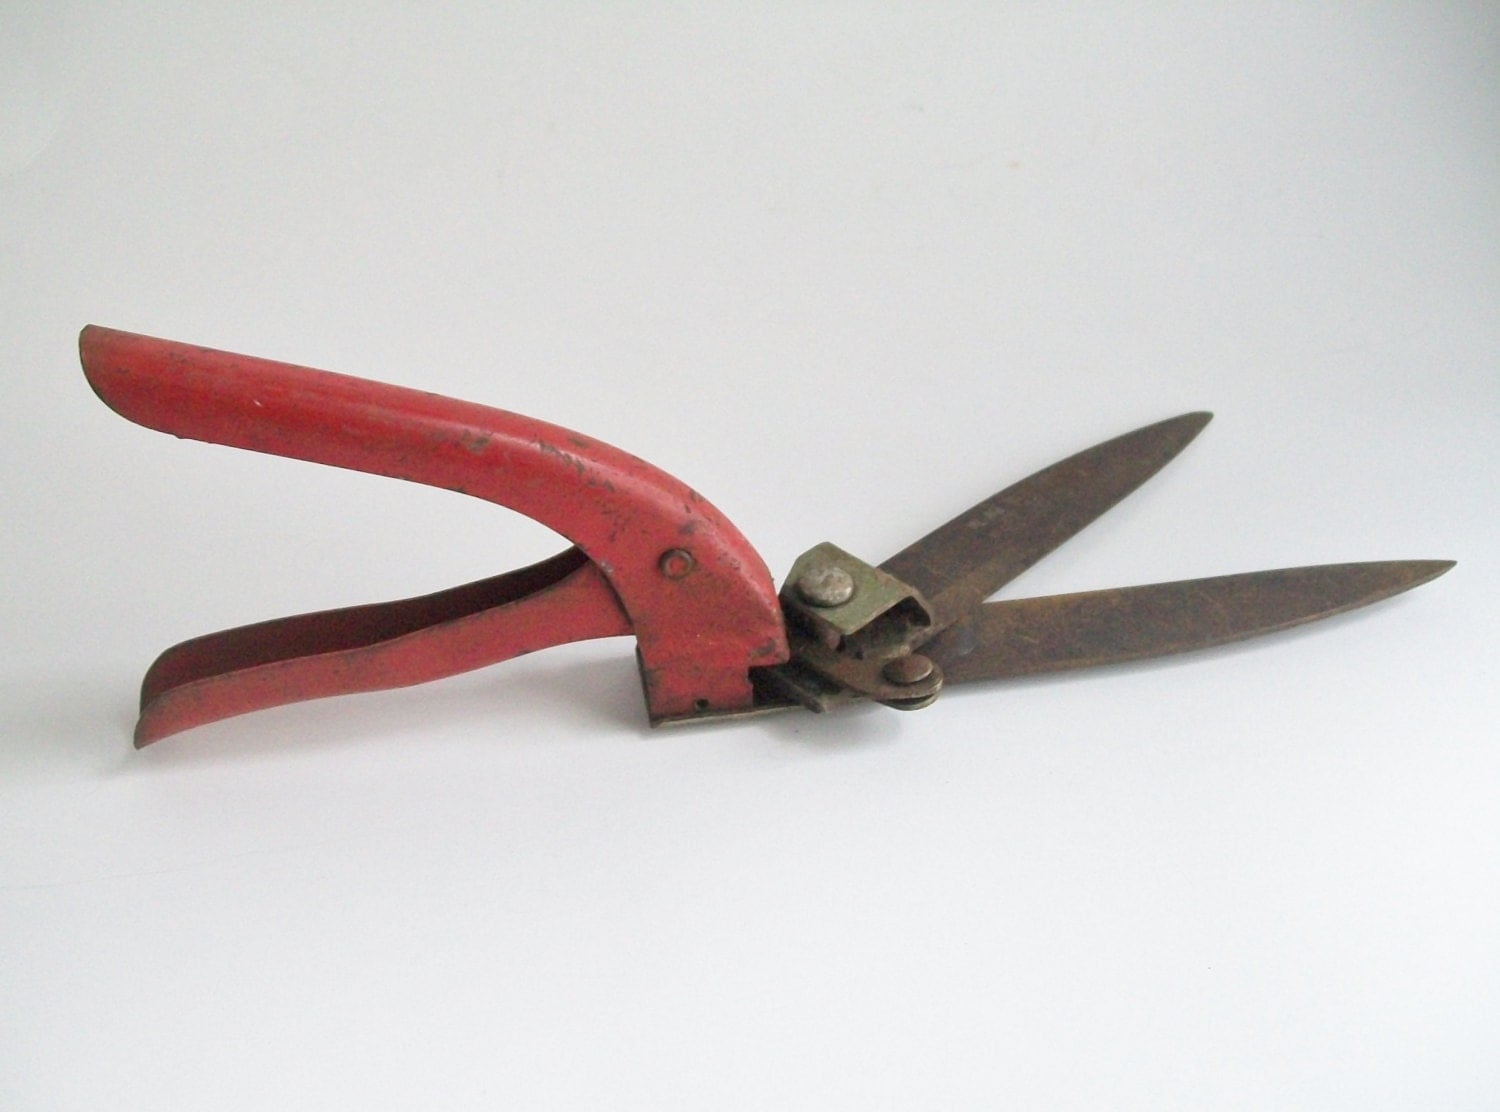 vintage garden clippers village blacksmith red grass clippers